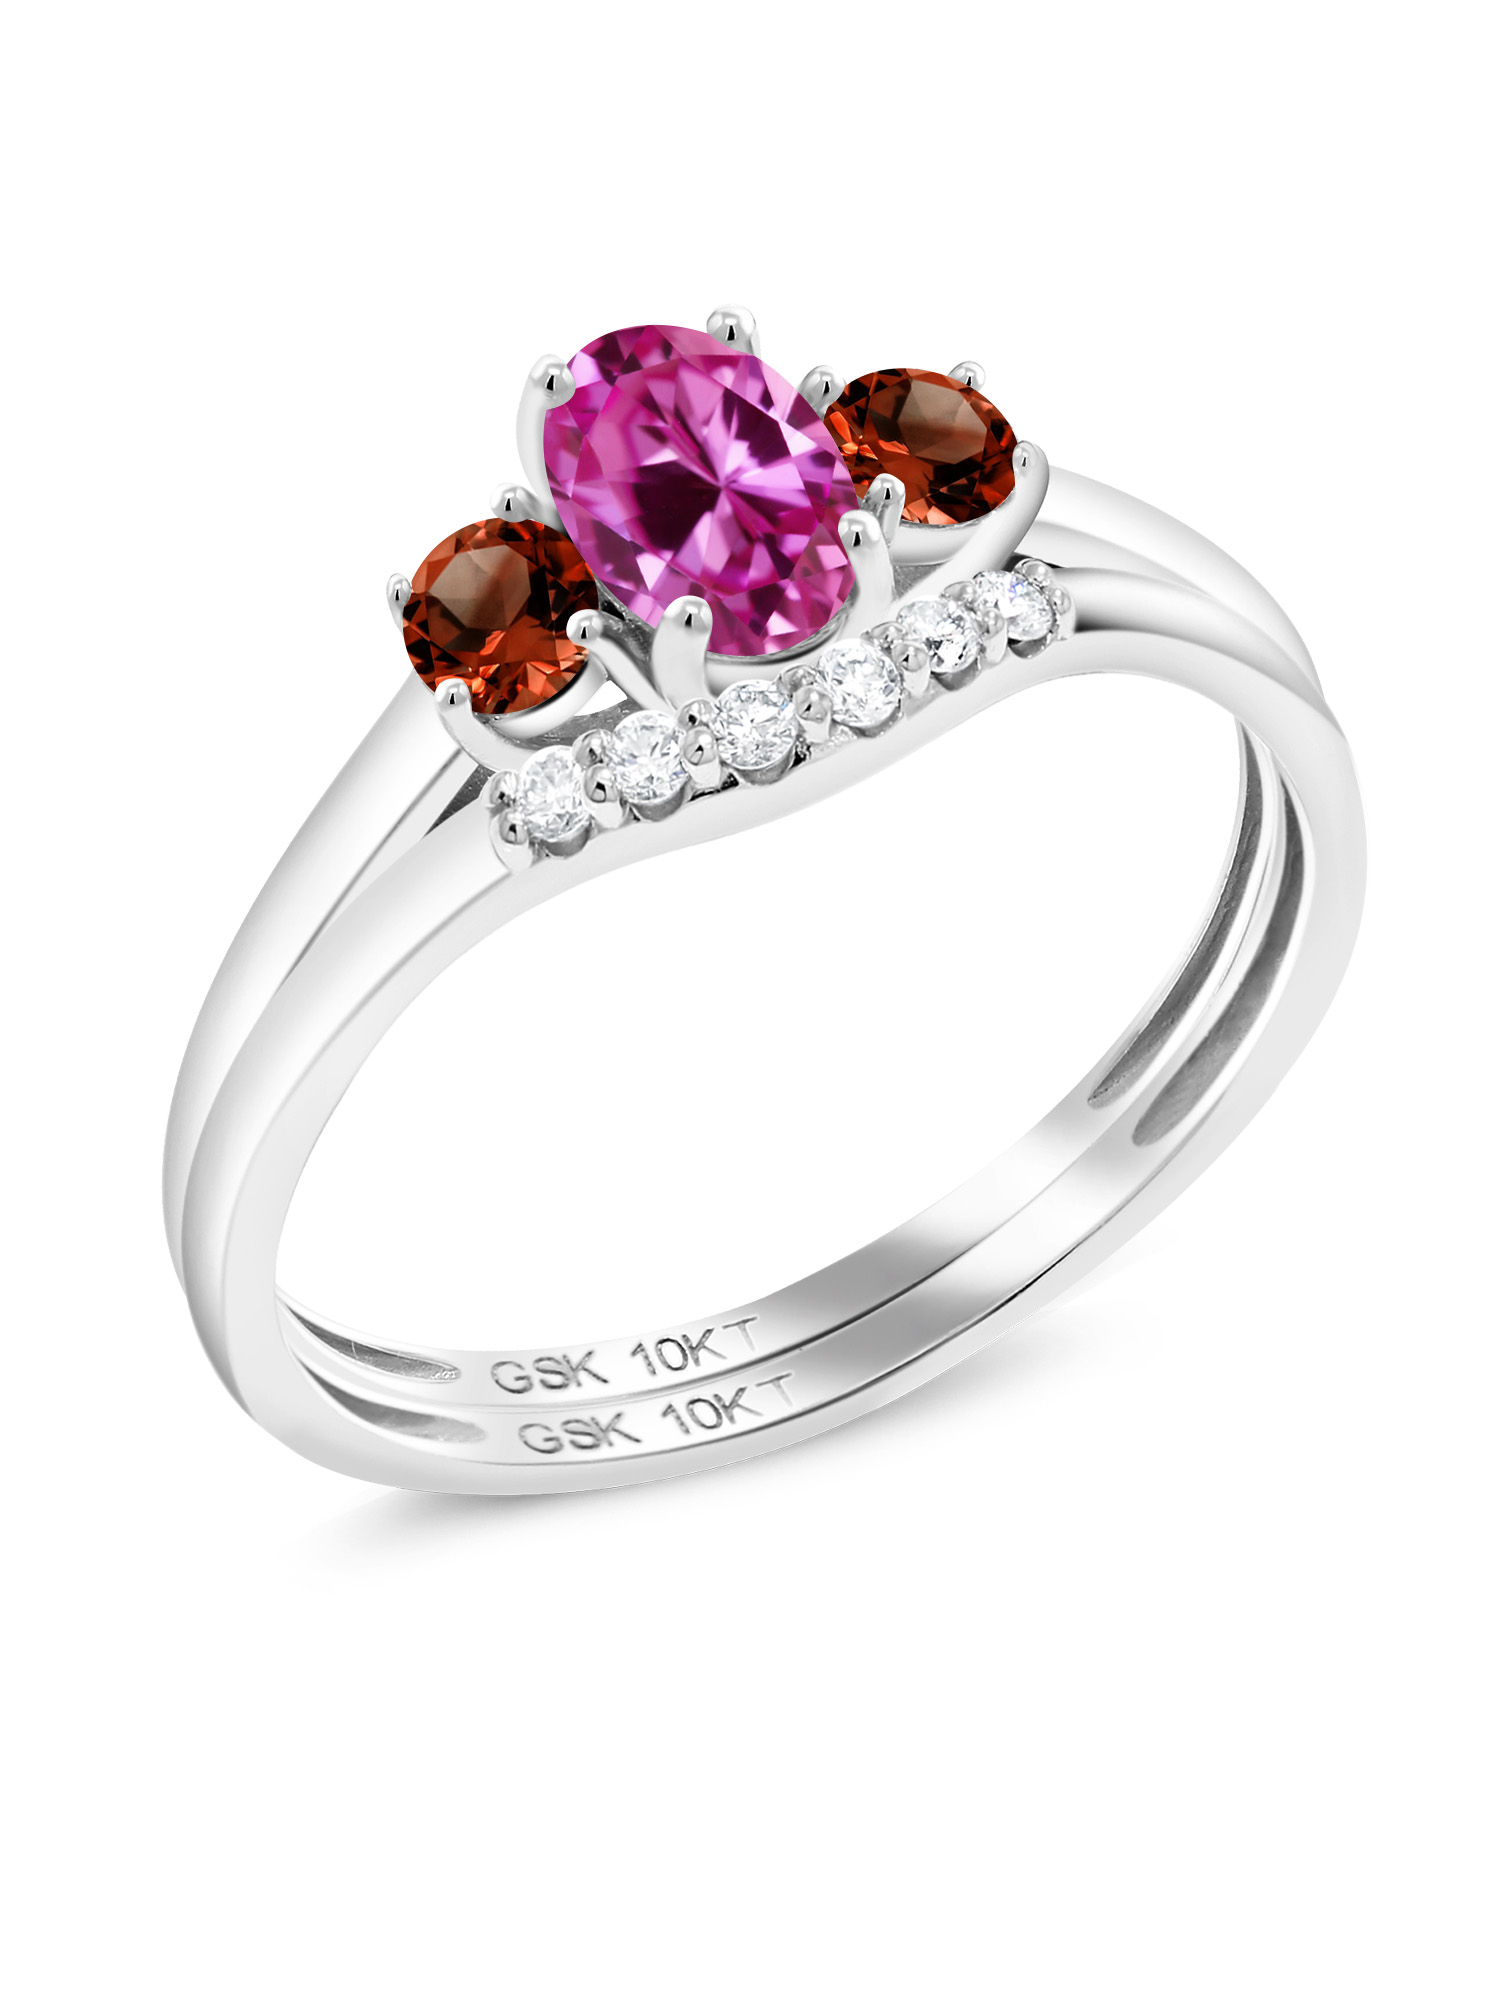 0.80 Ct Oval Pink Created Sapphire Red Garnet 10K White Gold Lab Grown Diamond Ring by